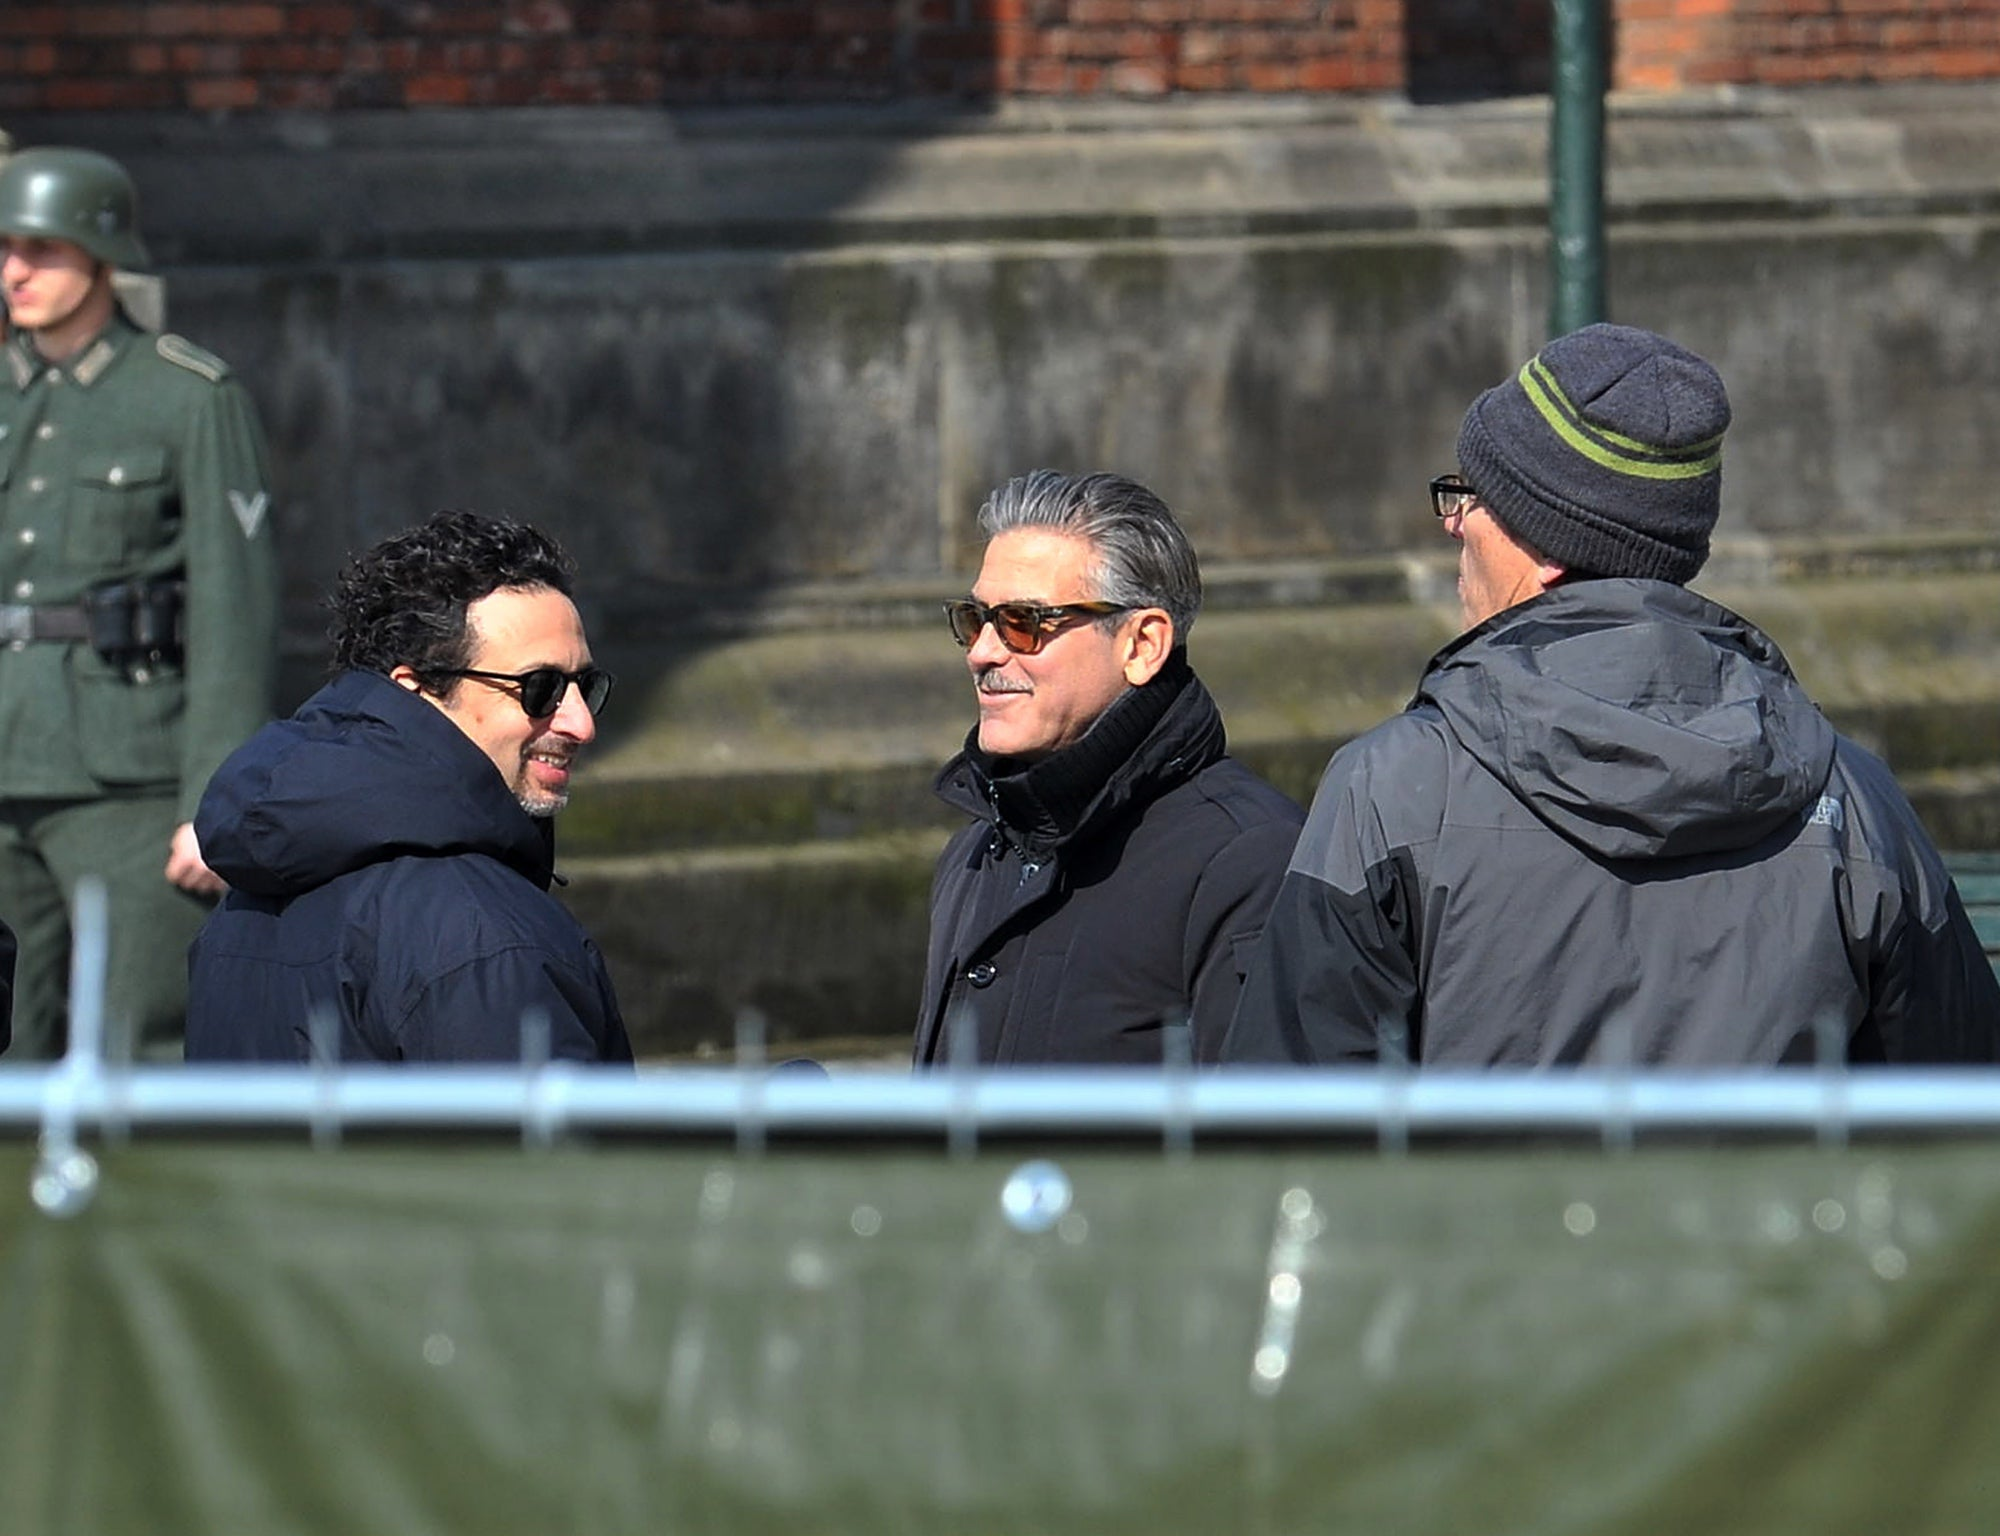 George George Clooney filiming Monuments Men at Berlin's Babelsberg Studios, 2013